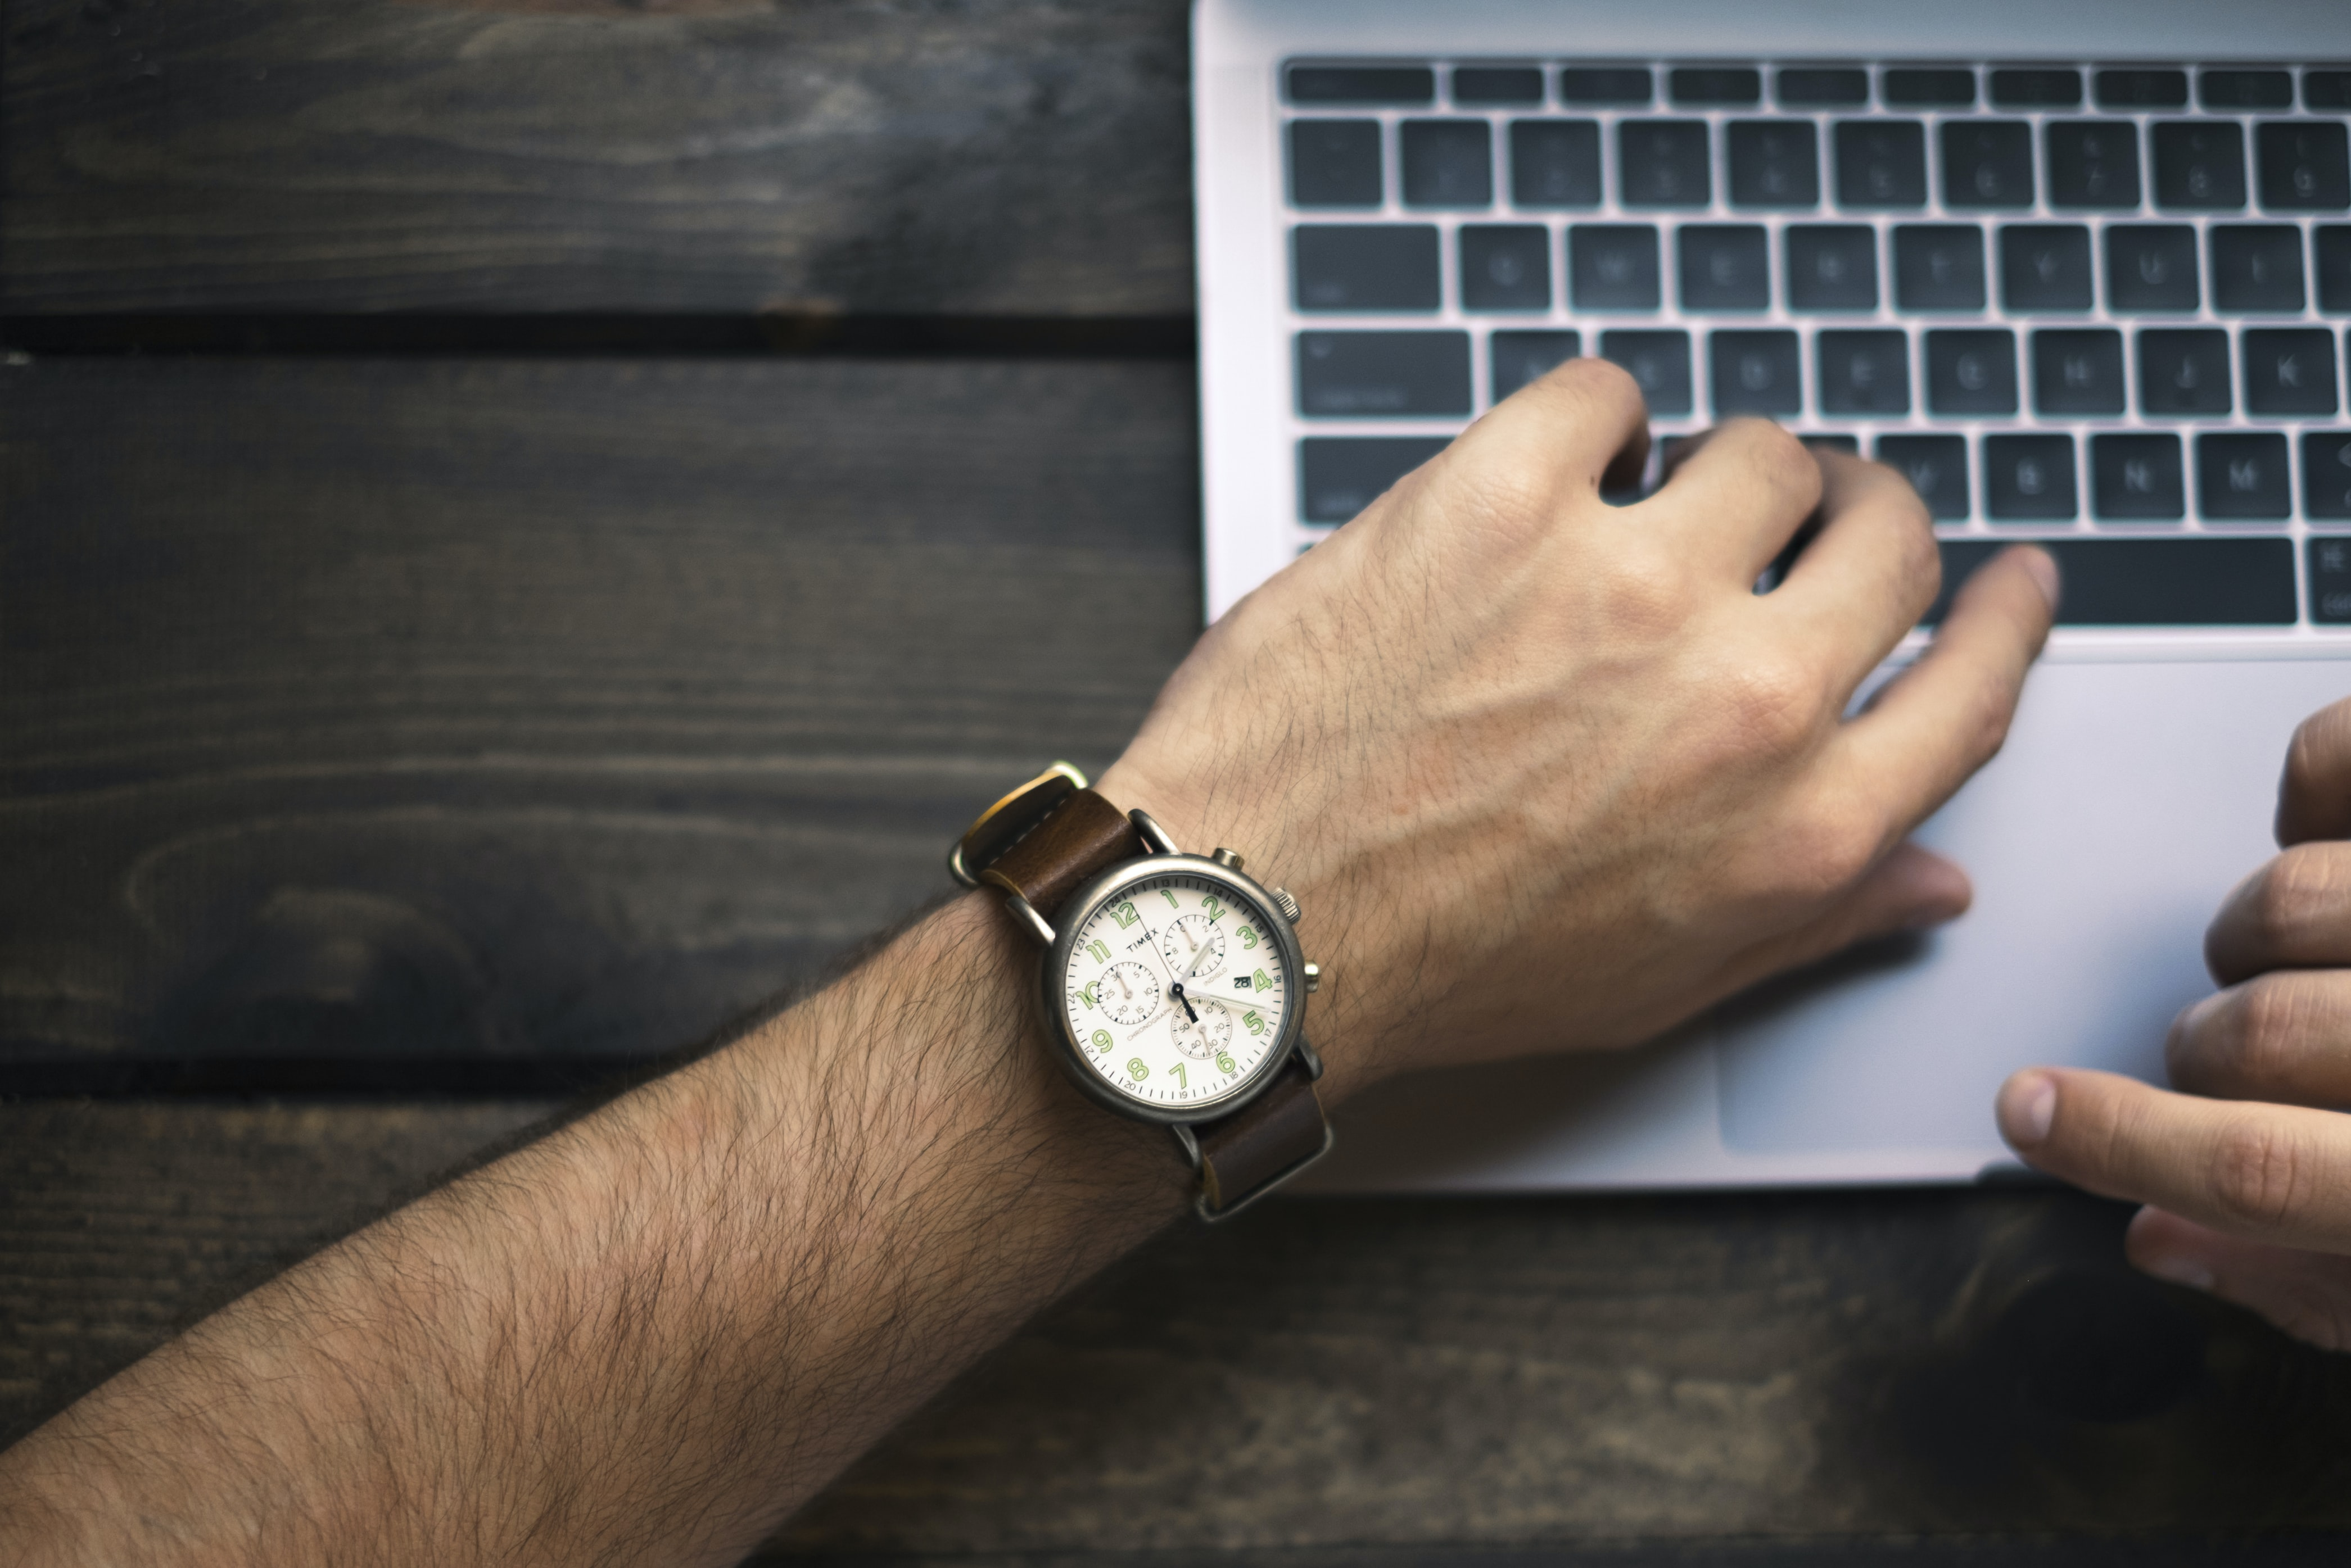 A man wearing a watch typing on a MacBook